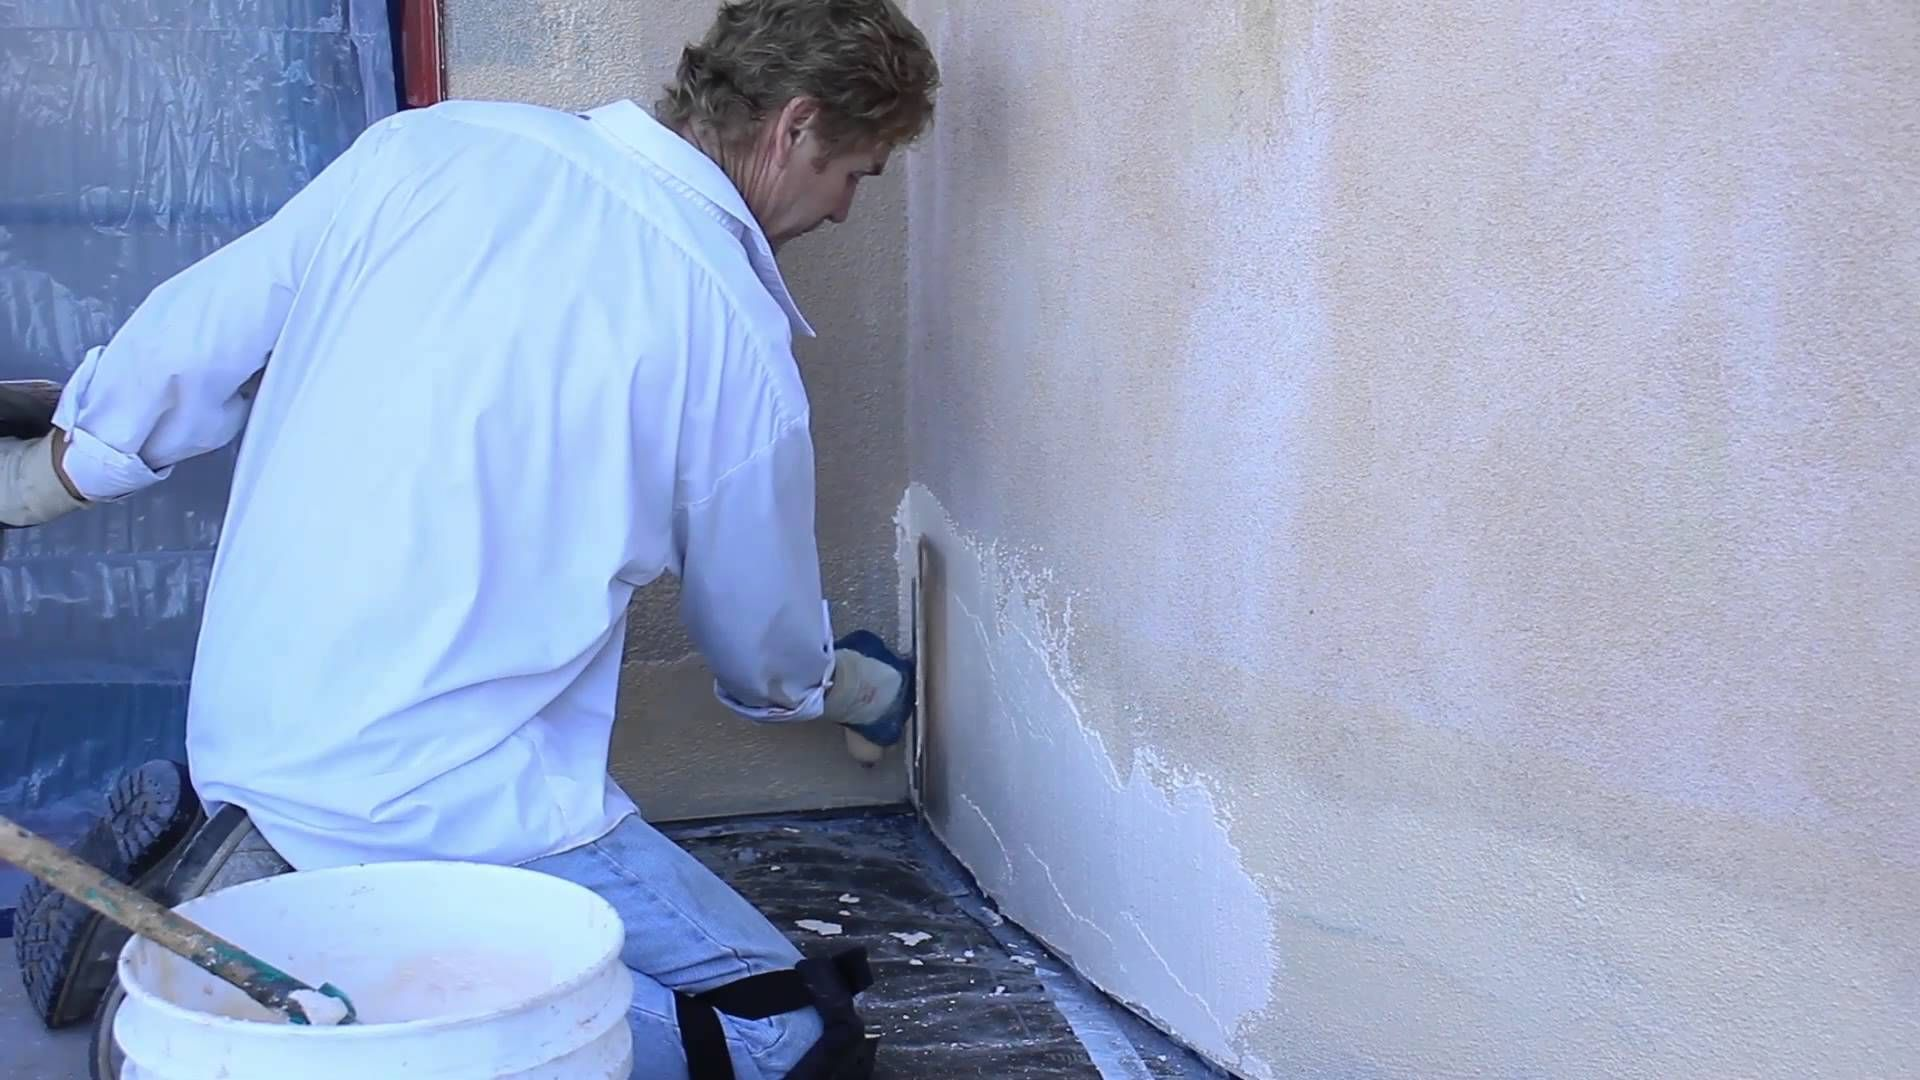 How To Plaster Over Exterior Wood Lath Walls - Kirk